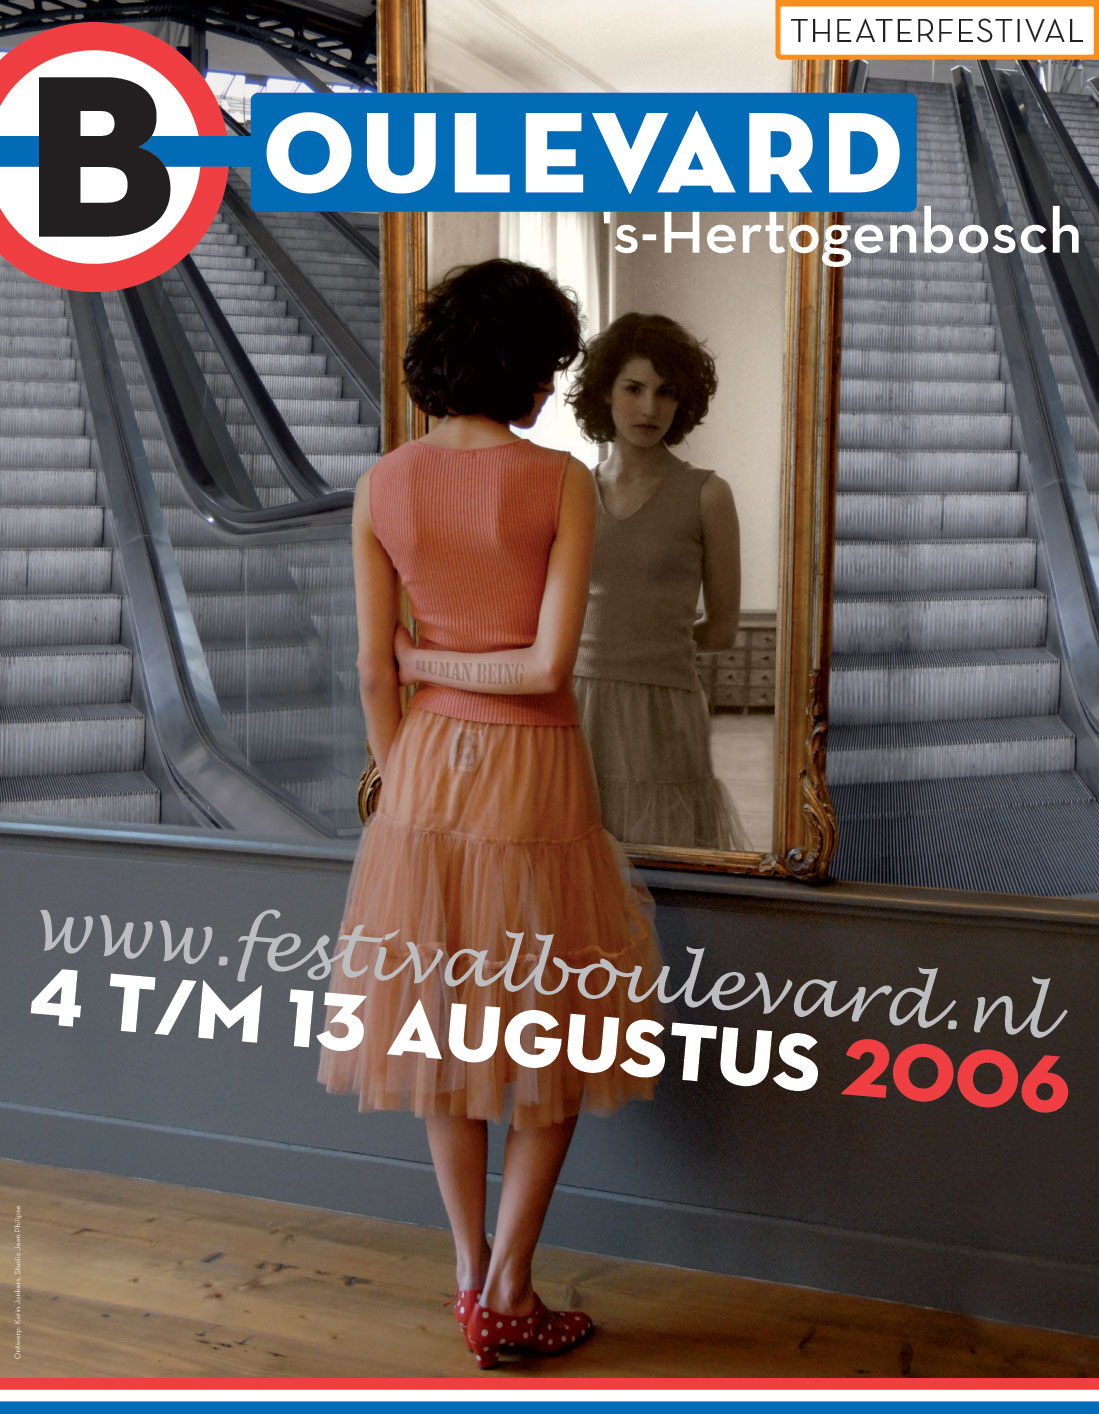 Theaterfestival Boulevard Affiche 2006